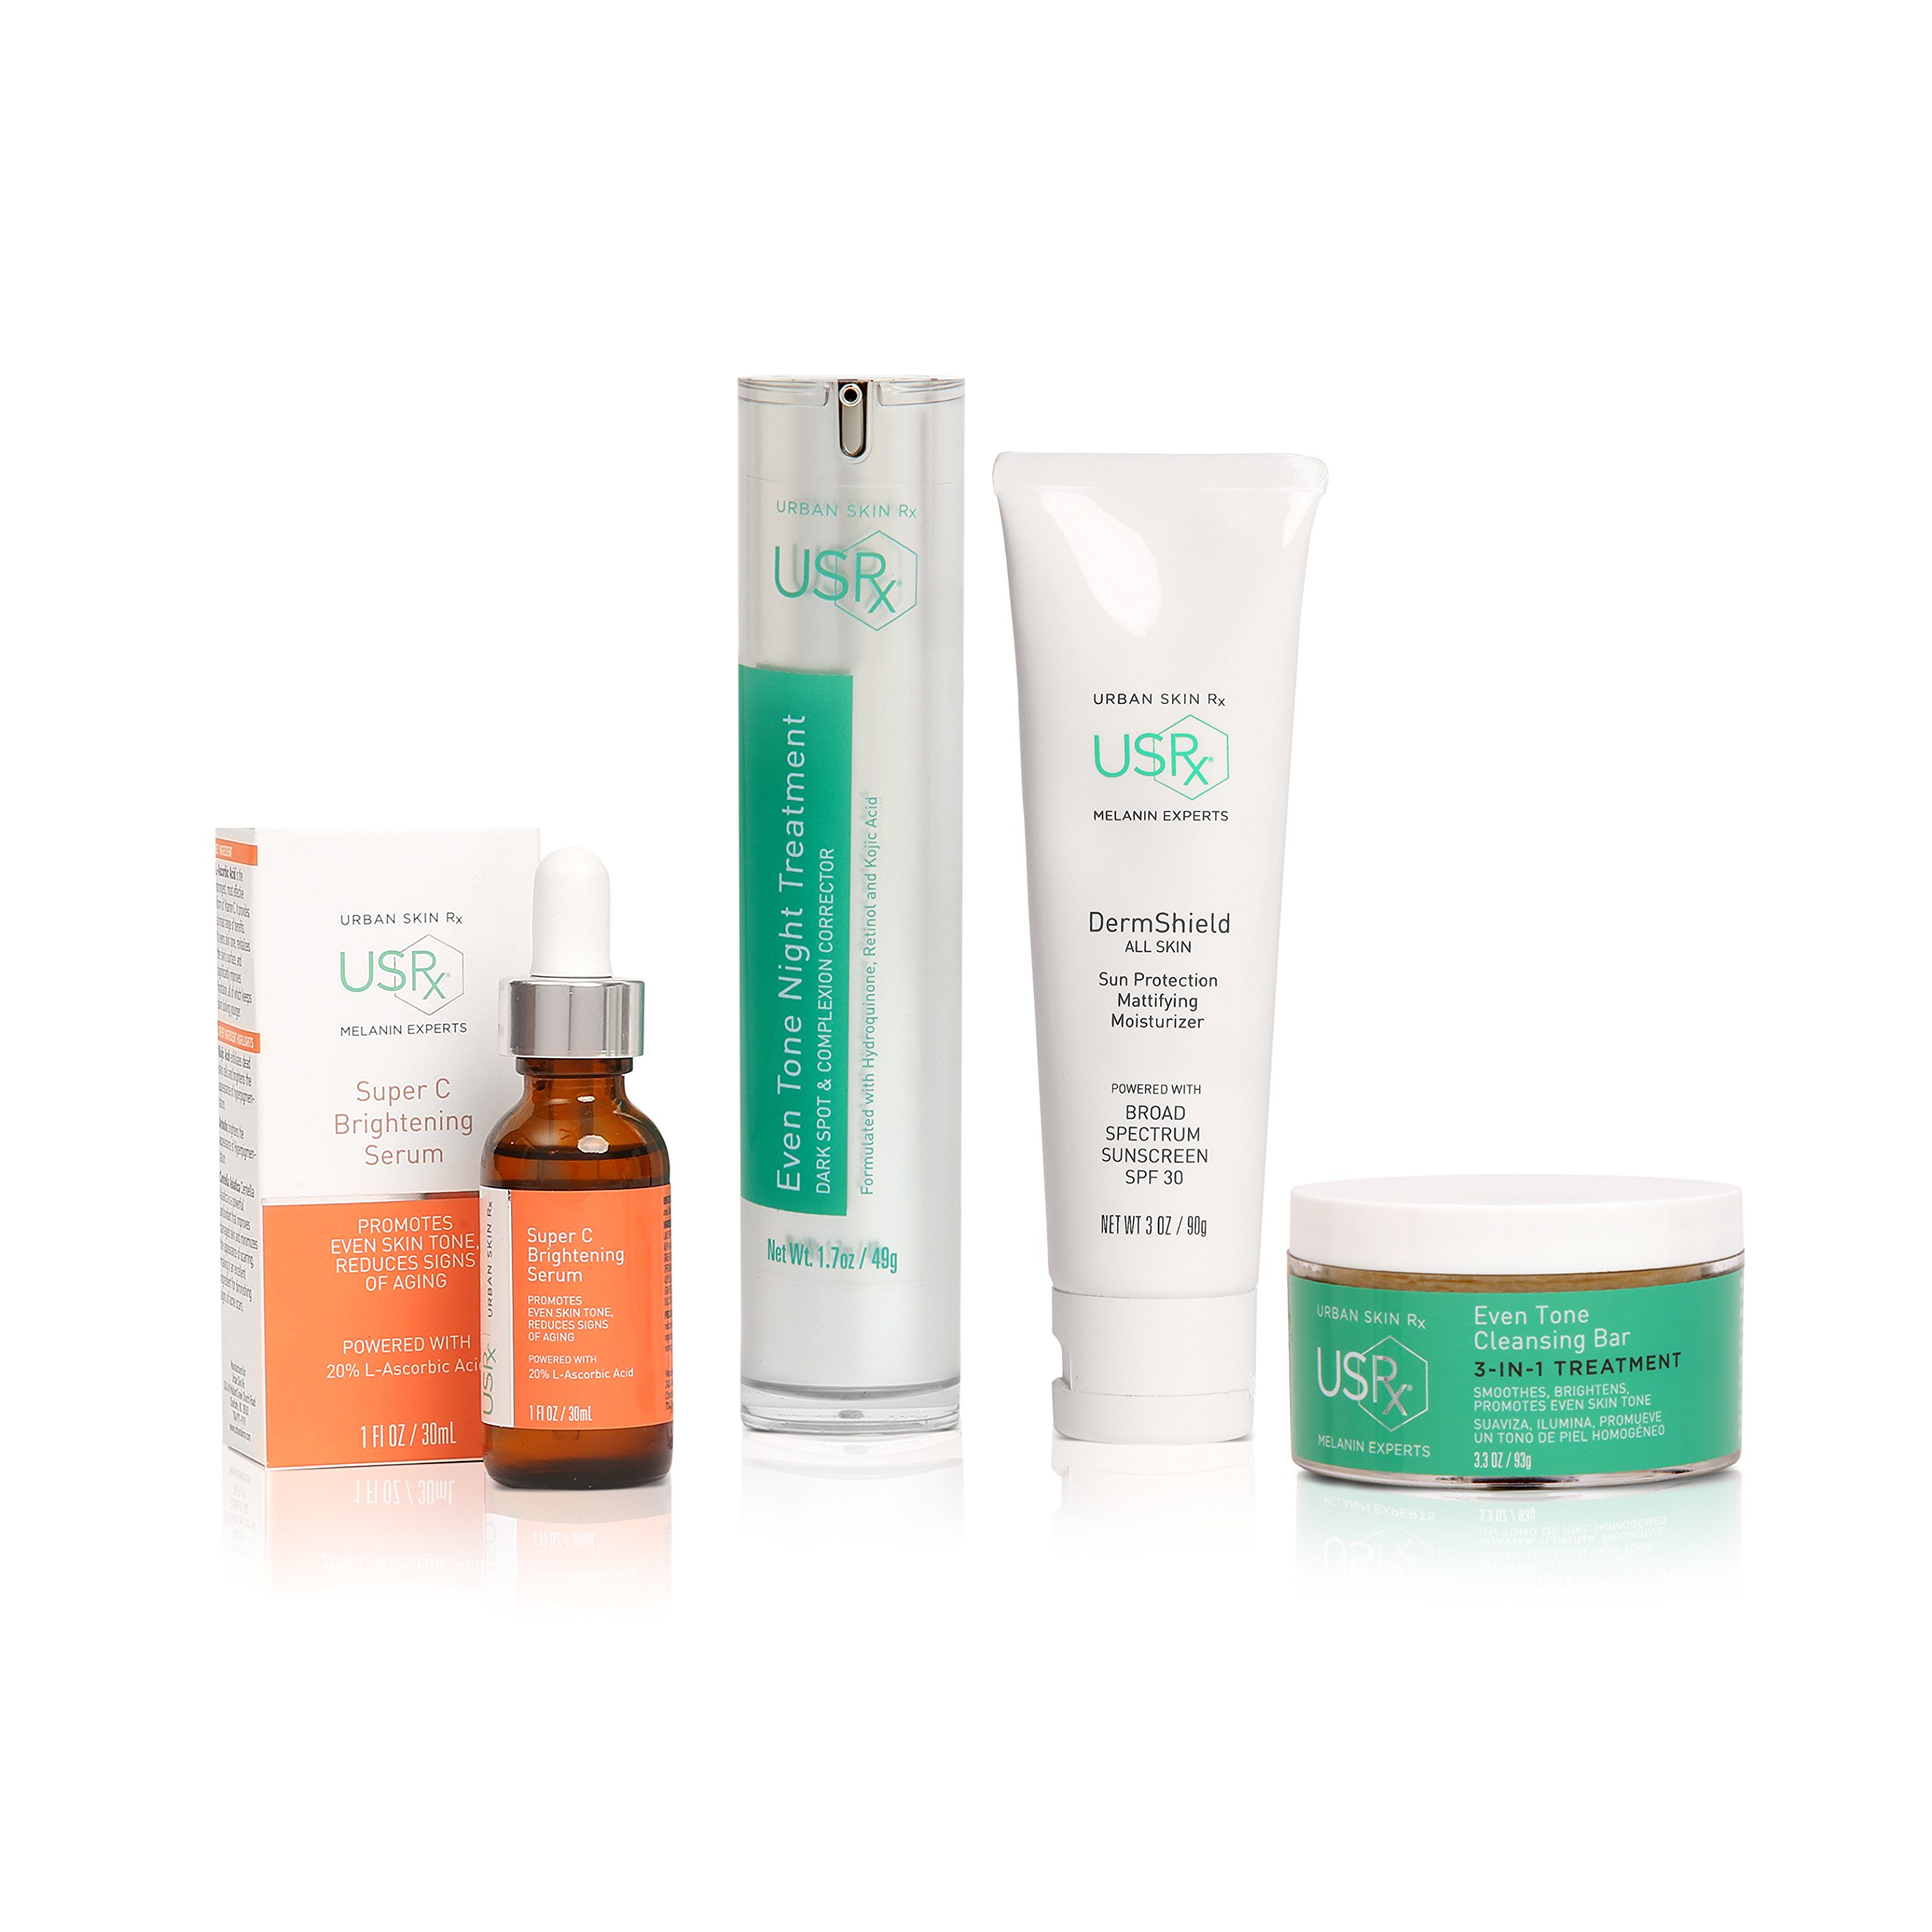 Urban Skin Rx Dark Spot Corrector Even Tone Package Brightening Dull Complexion and Fighting Discoloration, Skin Care Set